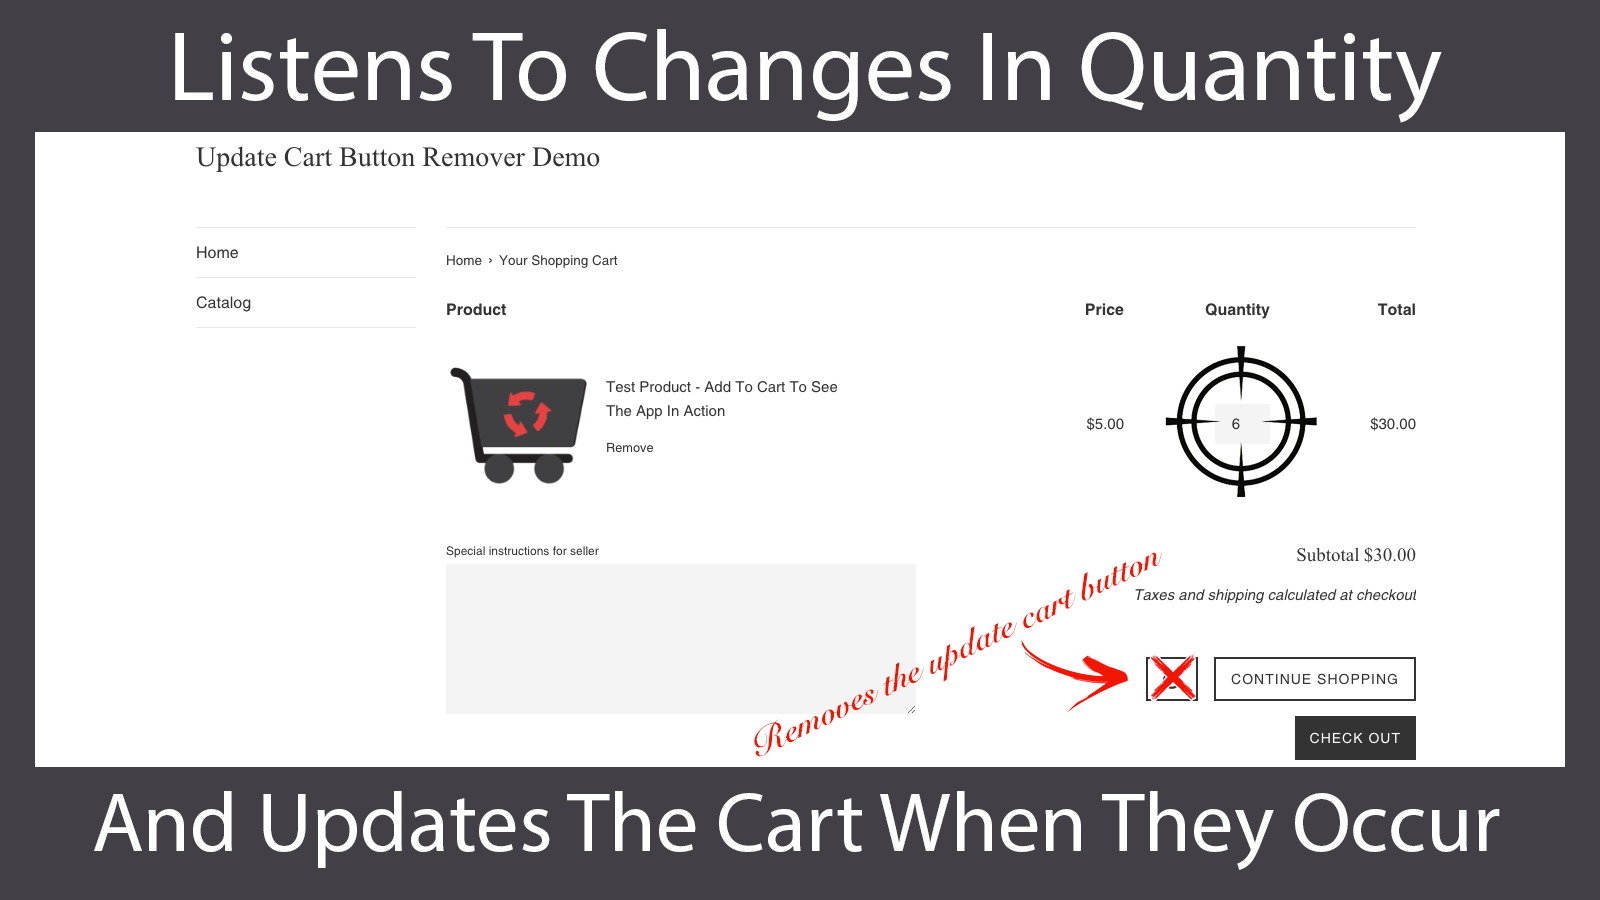 The app automatically detects cart quantity changes and updates